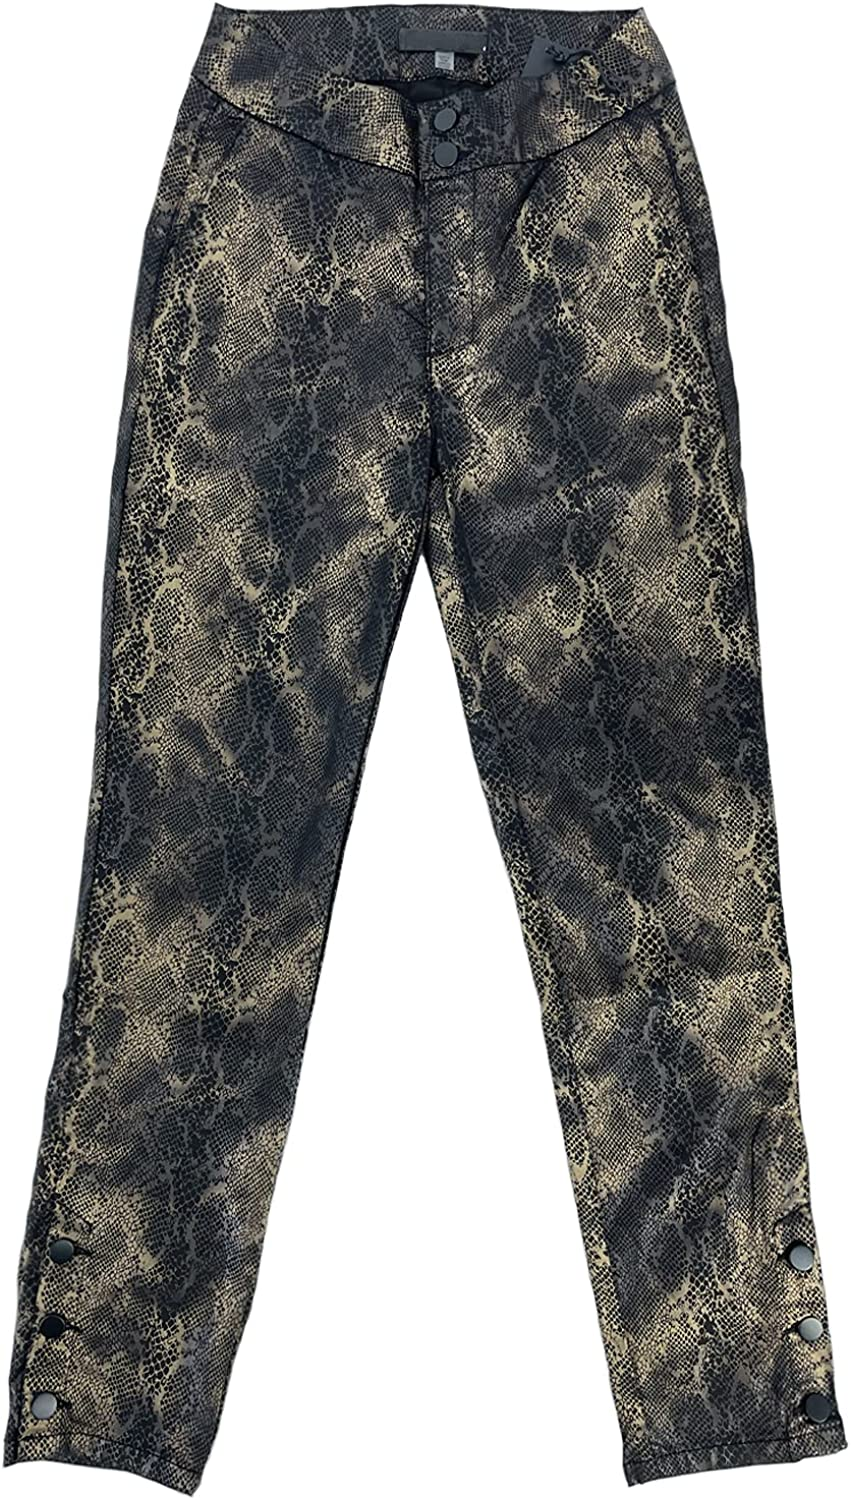 Casual Pants for Women High Waist Snake Skin Pants Printed Trousers for Ladies